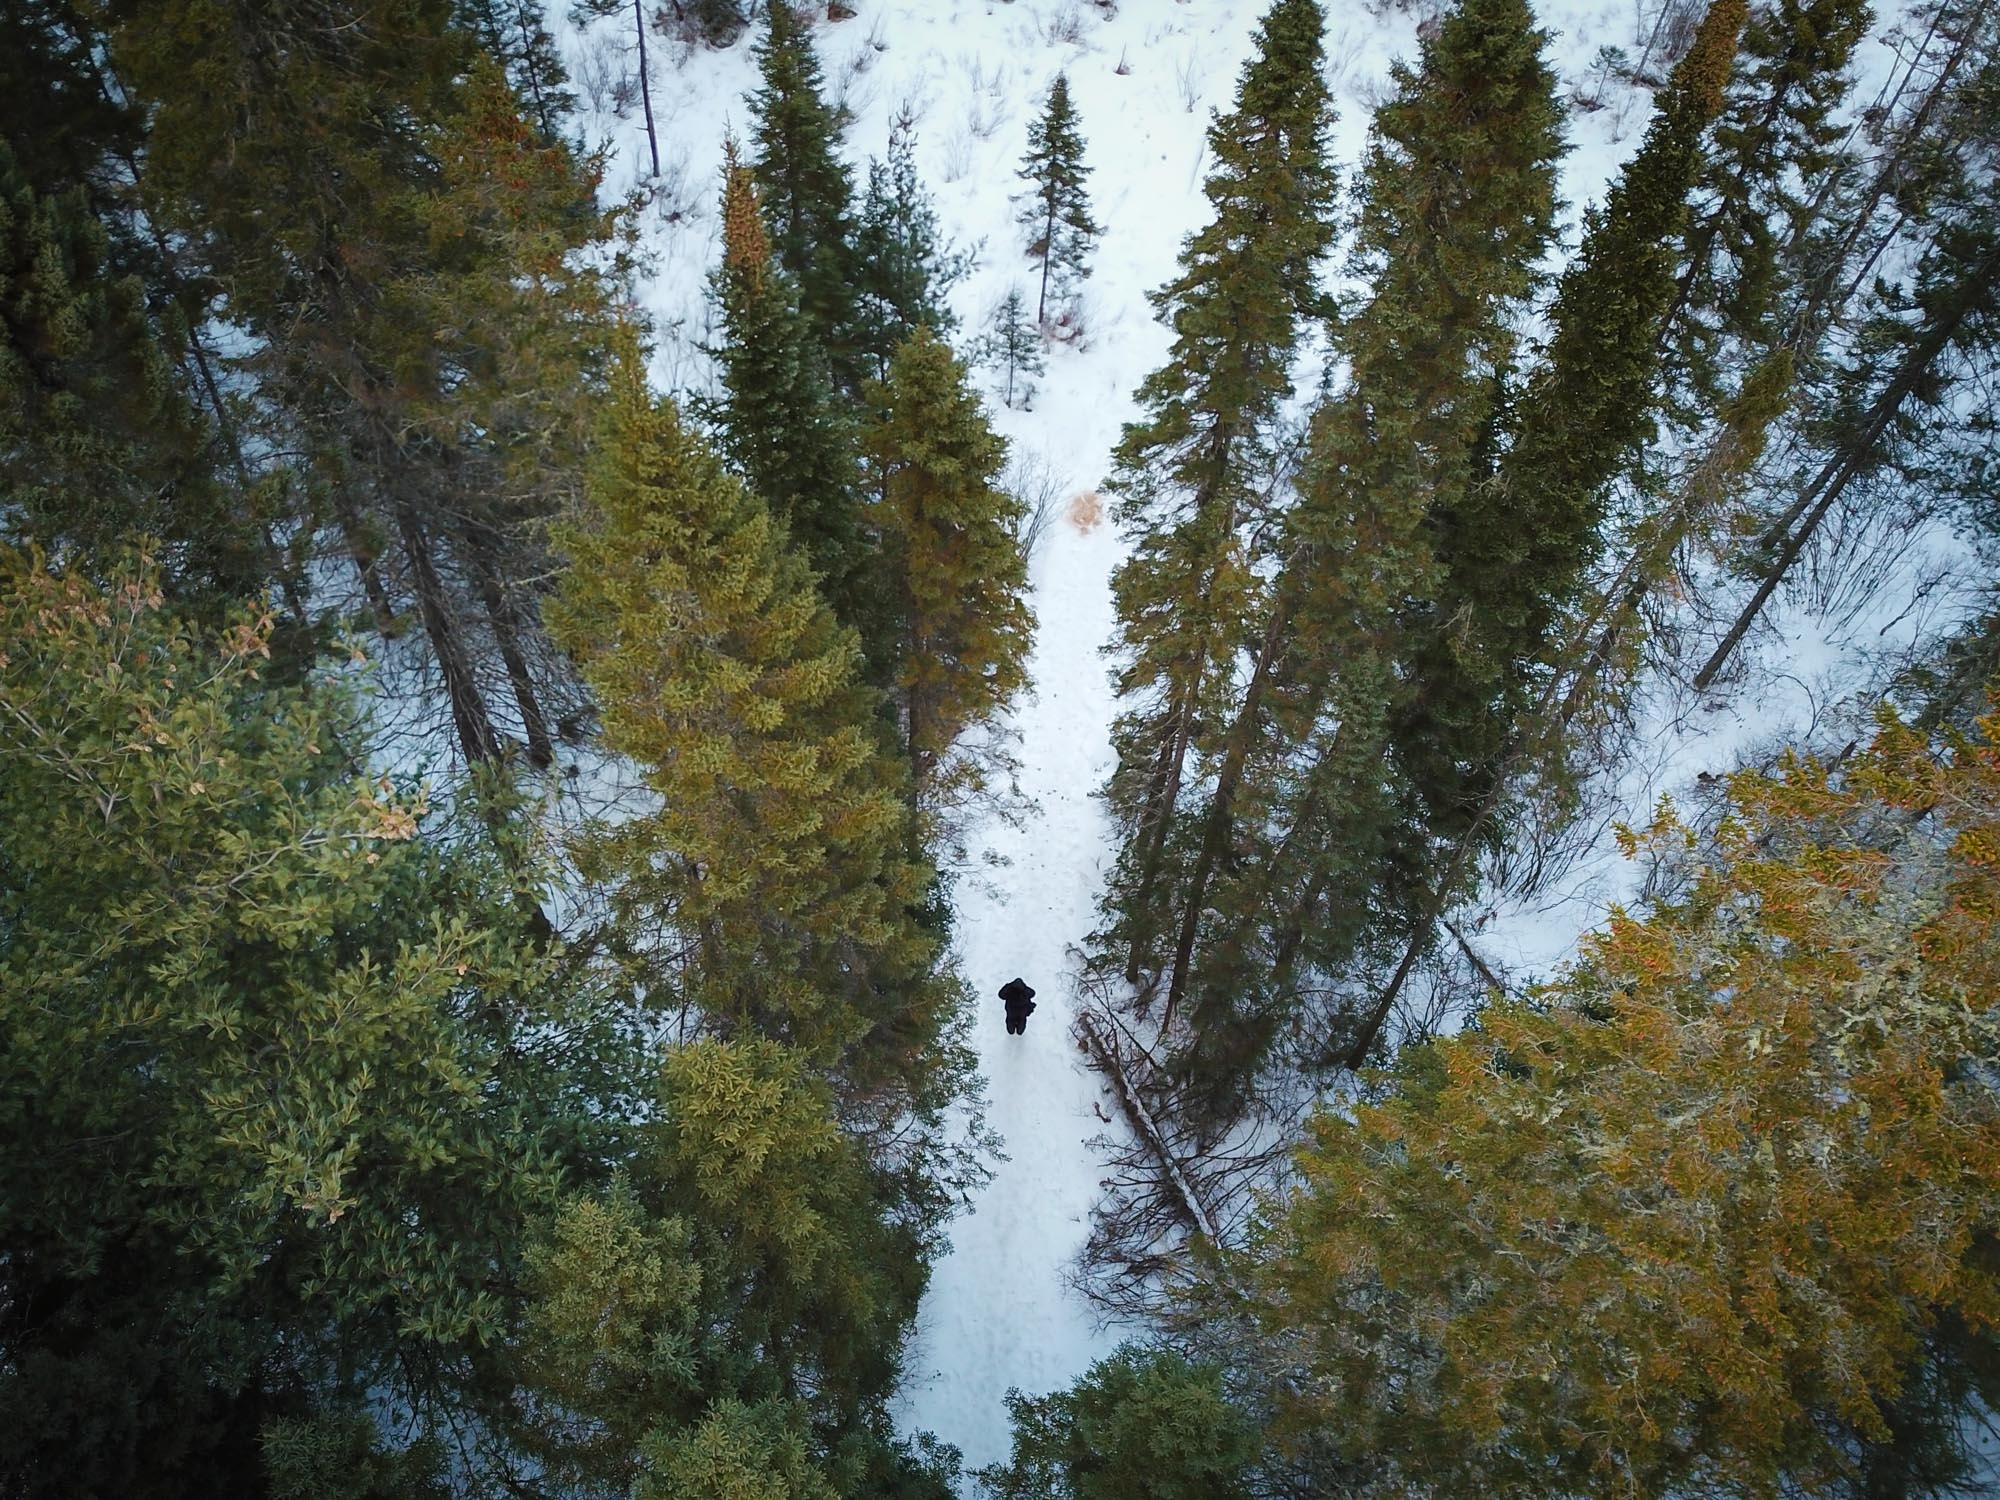 Aerial view of person standing amongst trees in winter - David Coulson © David Coulson